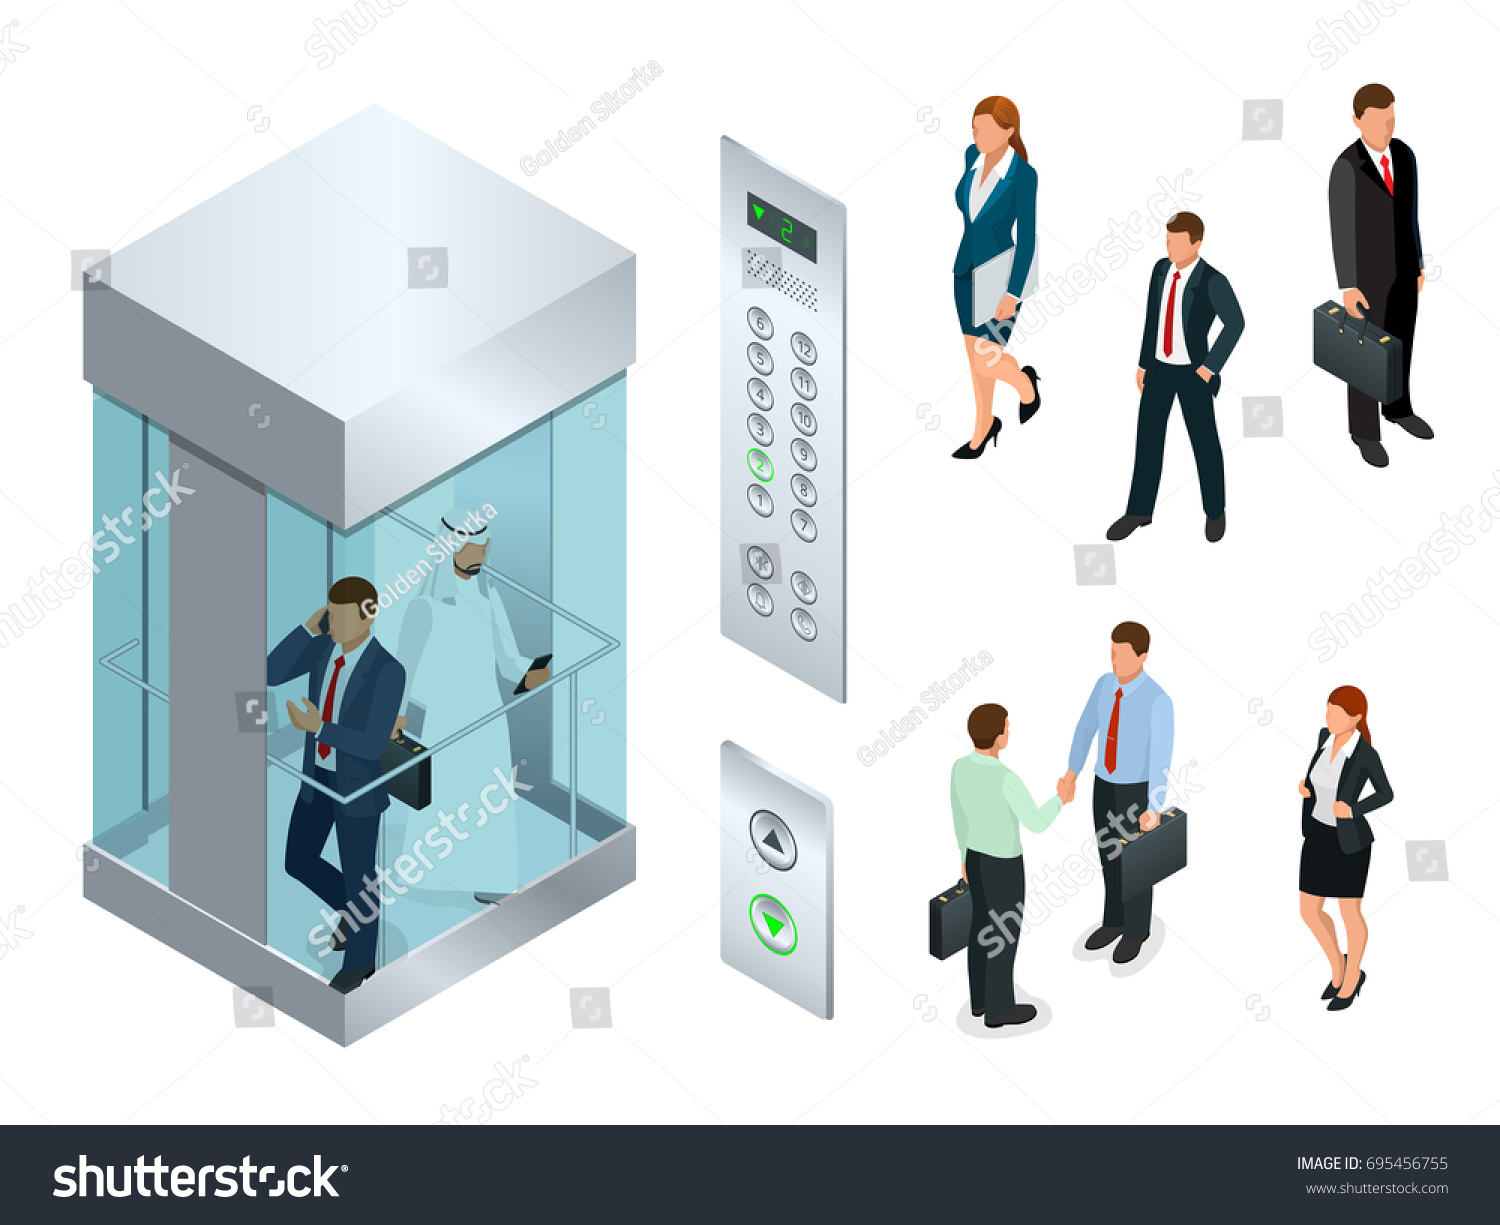 people inside elevator. isometric vector design of the elevator with people inside and button panel. realistic empty c